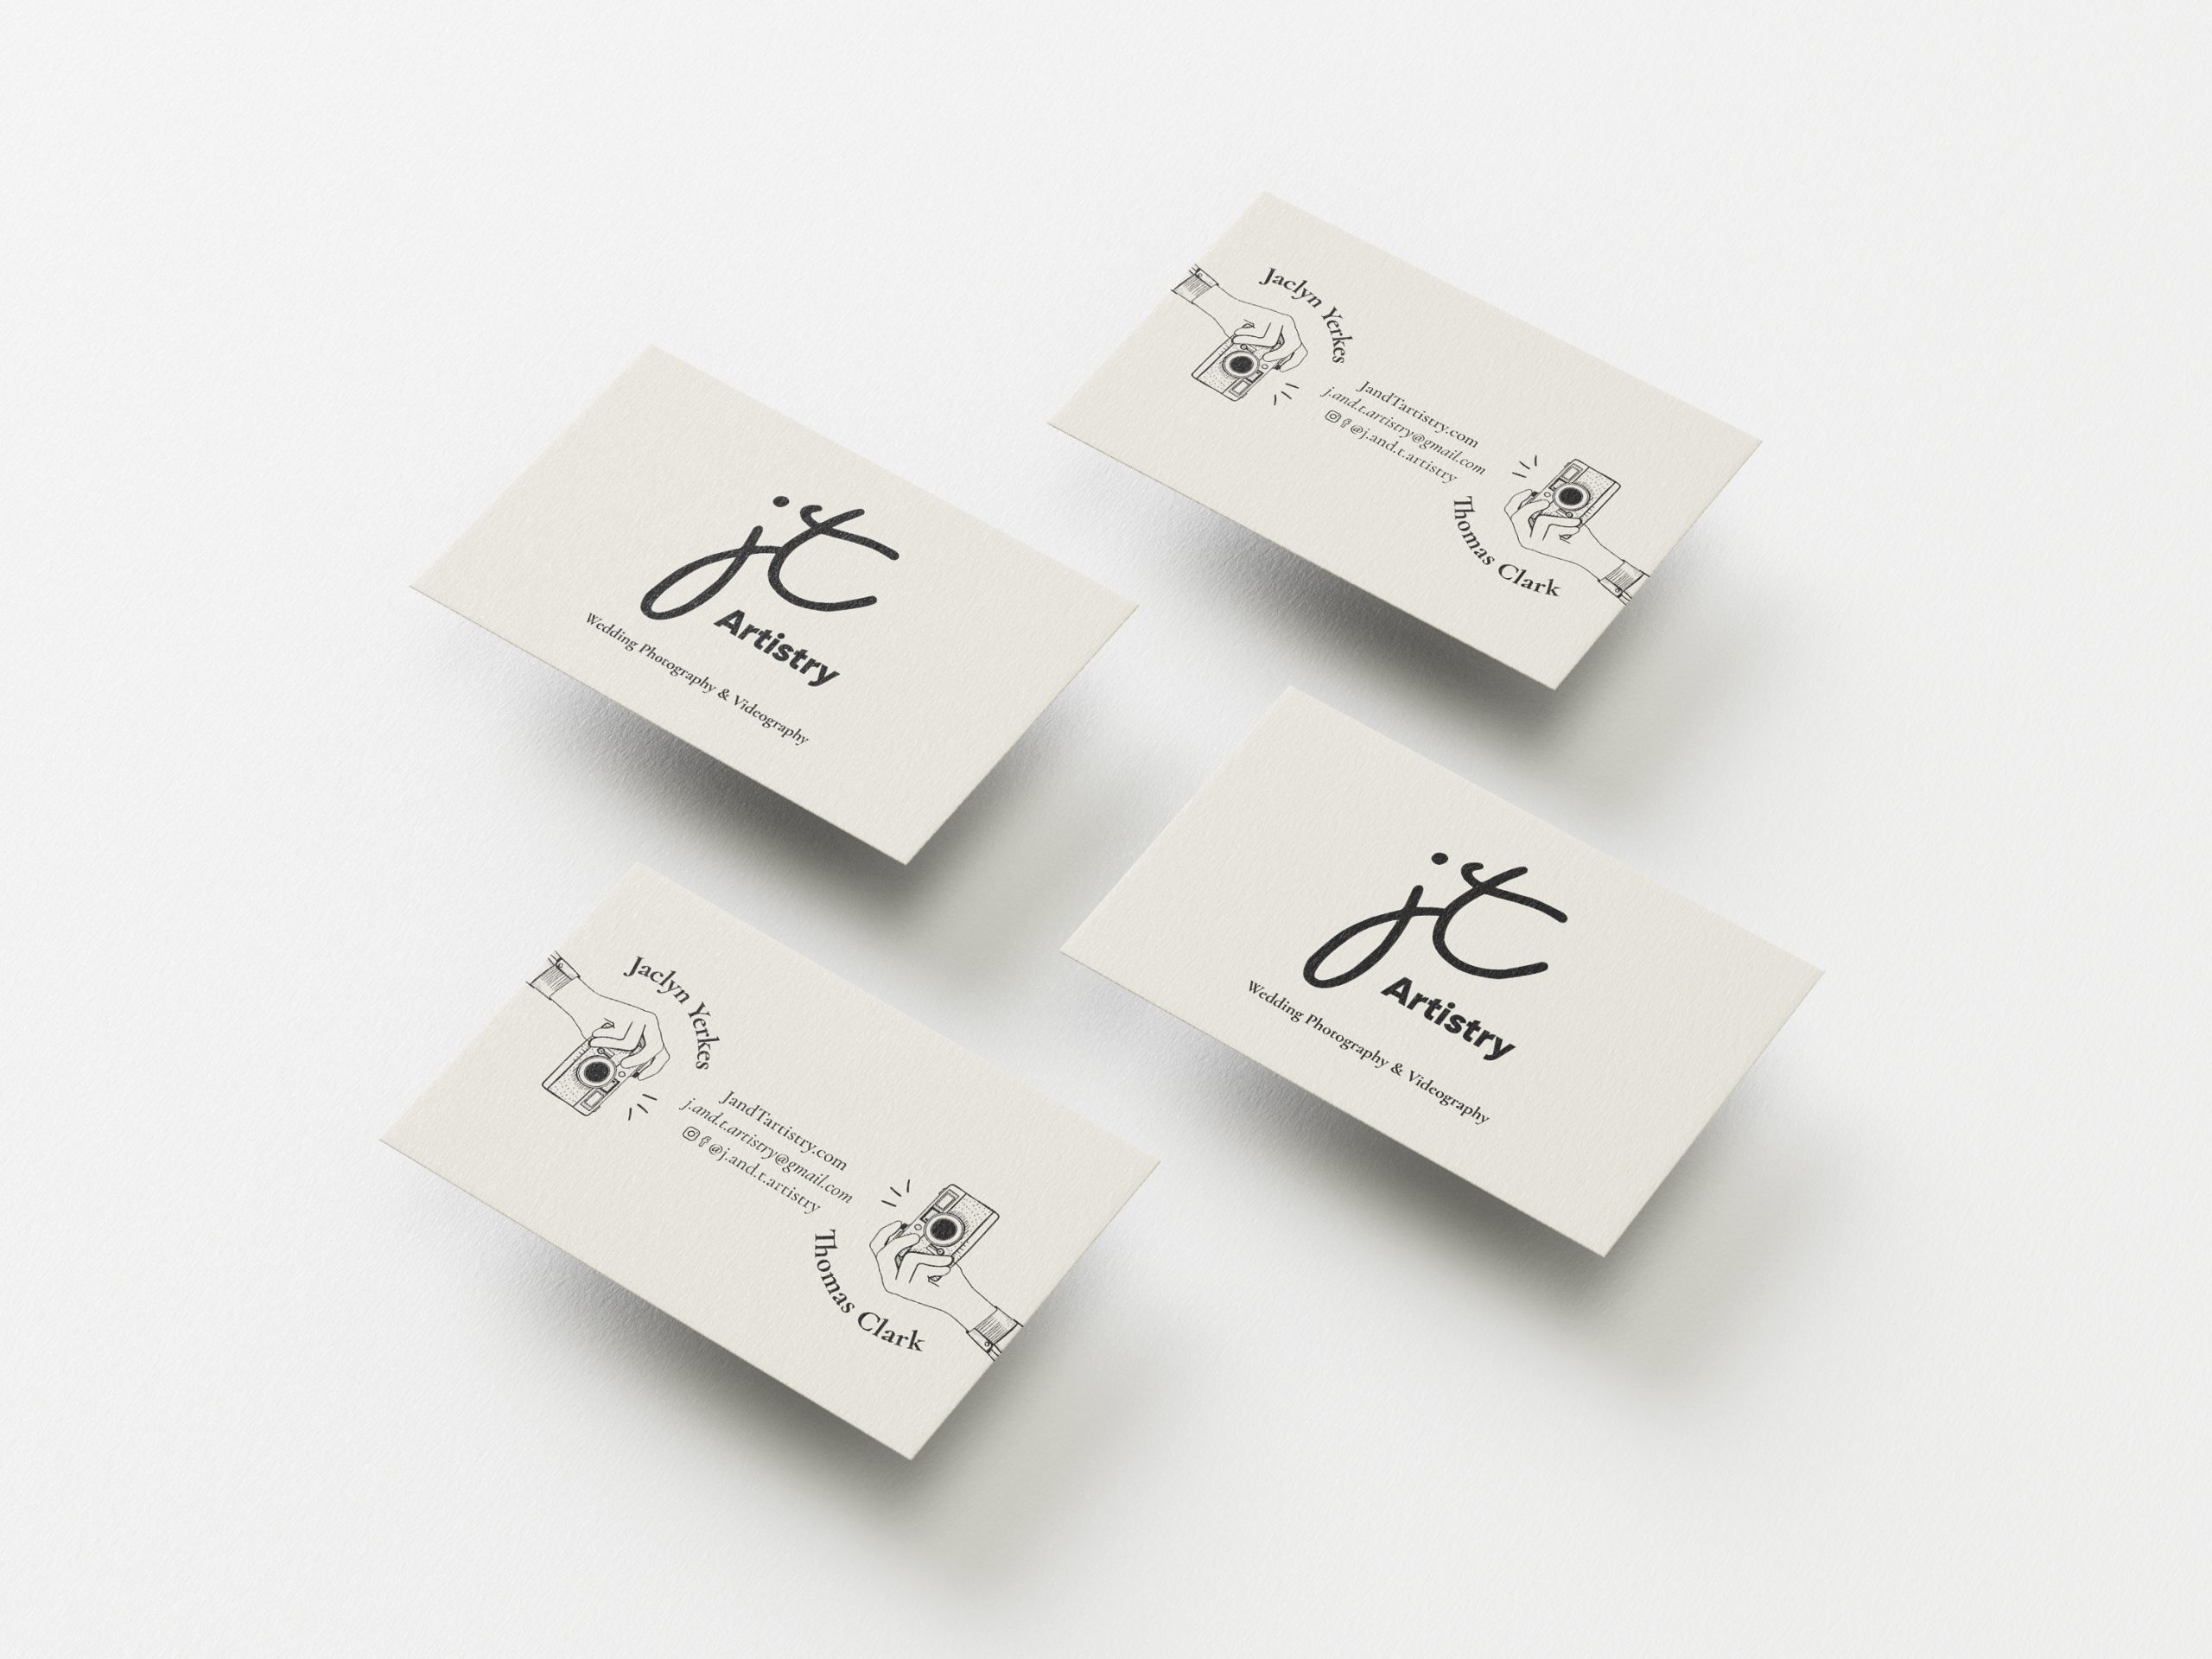 J and T Artistry business cards